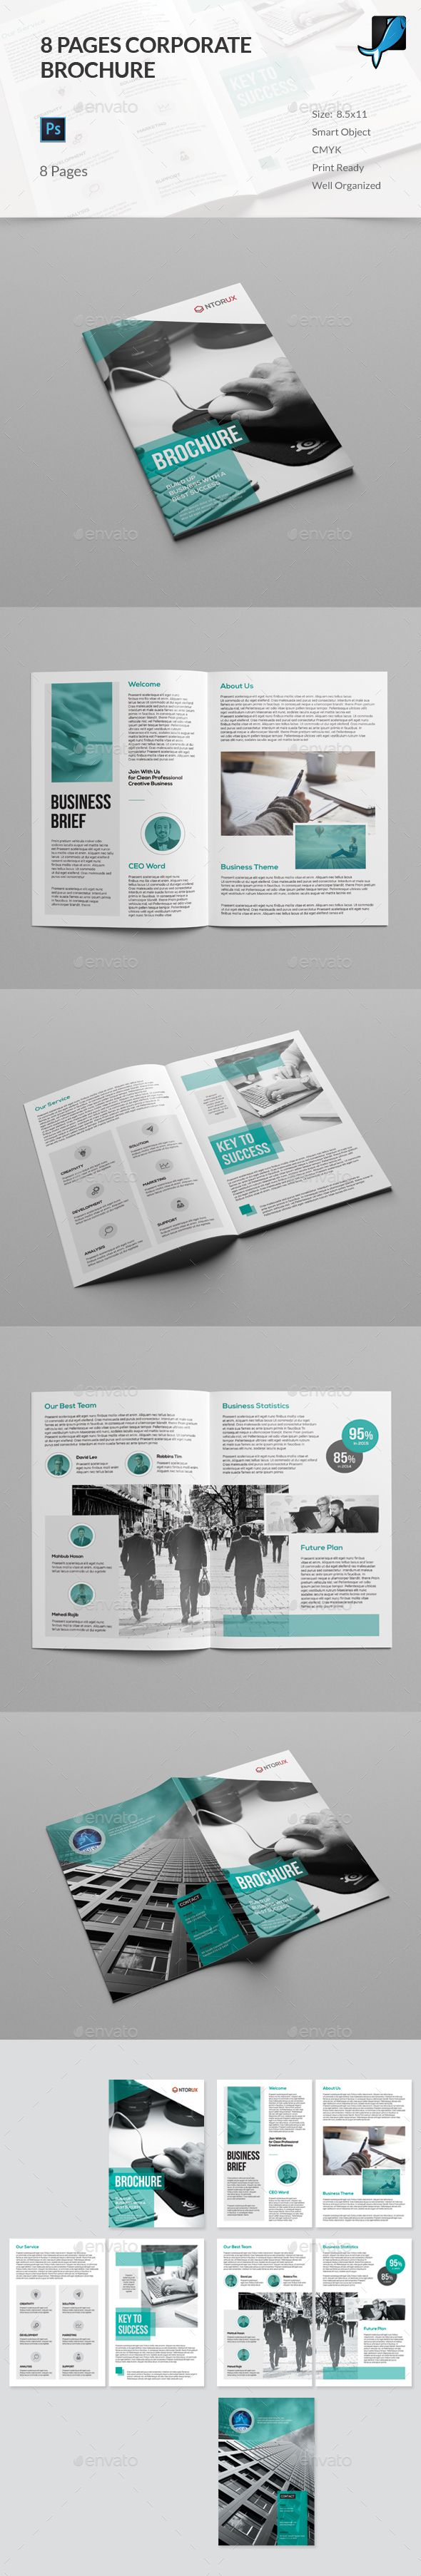 Best Brochures Images On Pinterest Brochures Brochure - 8 page brochure template